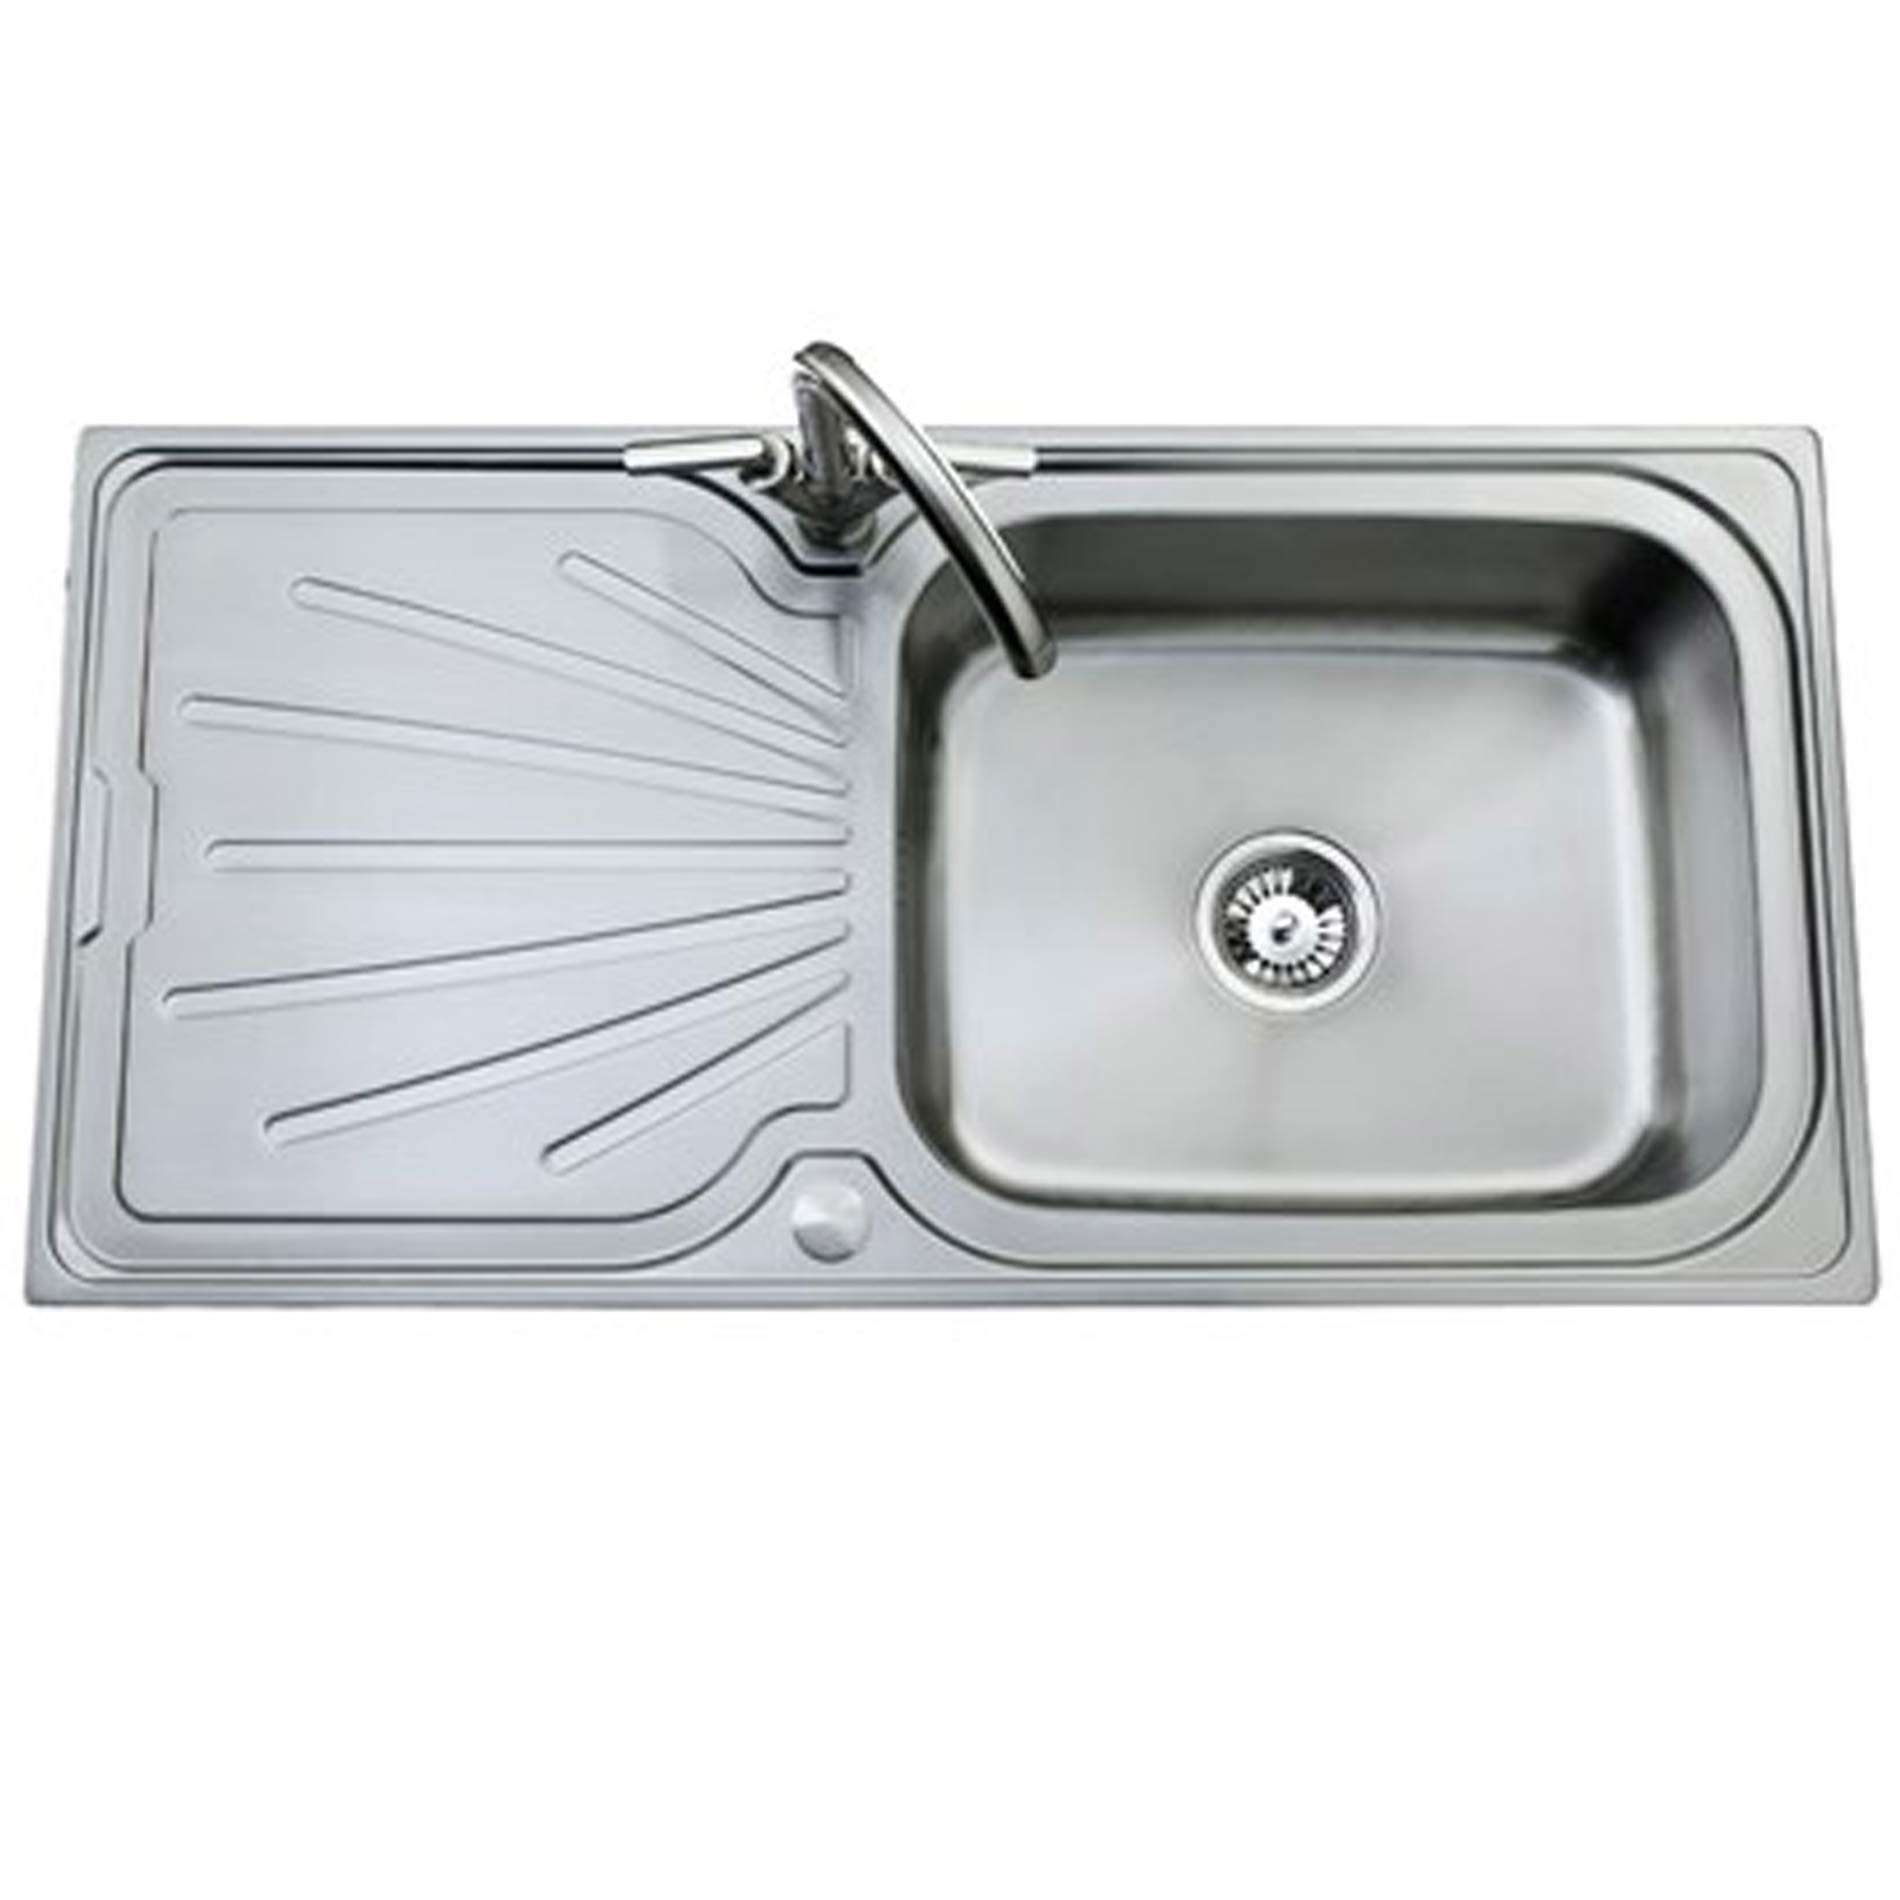 Single Bowl With Drainer - Kitchen Sinks & Taps